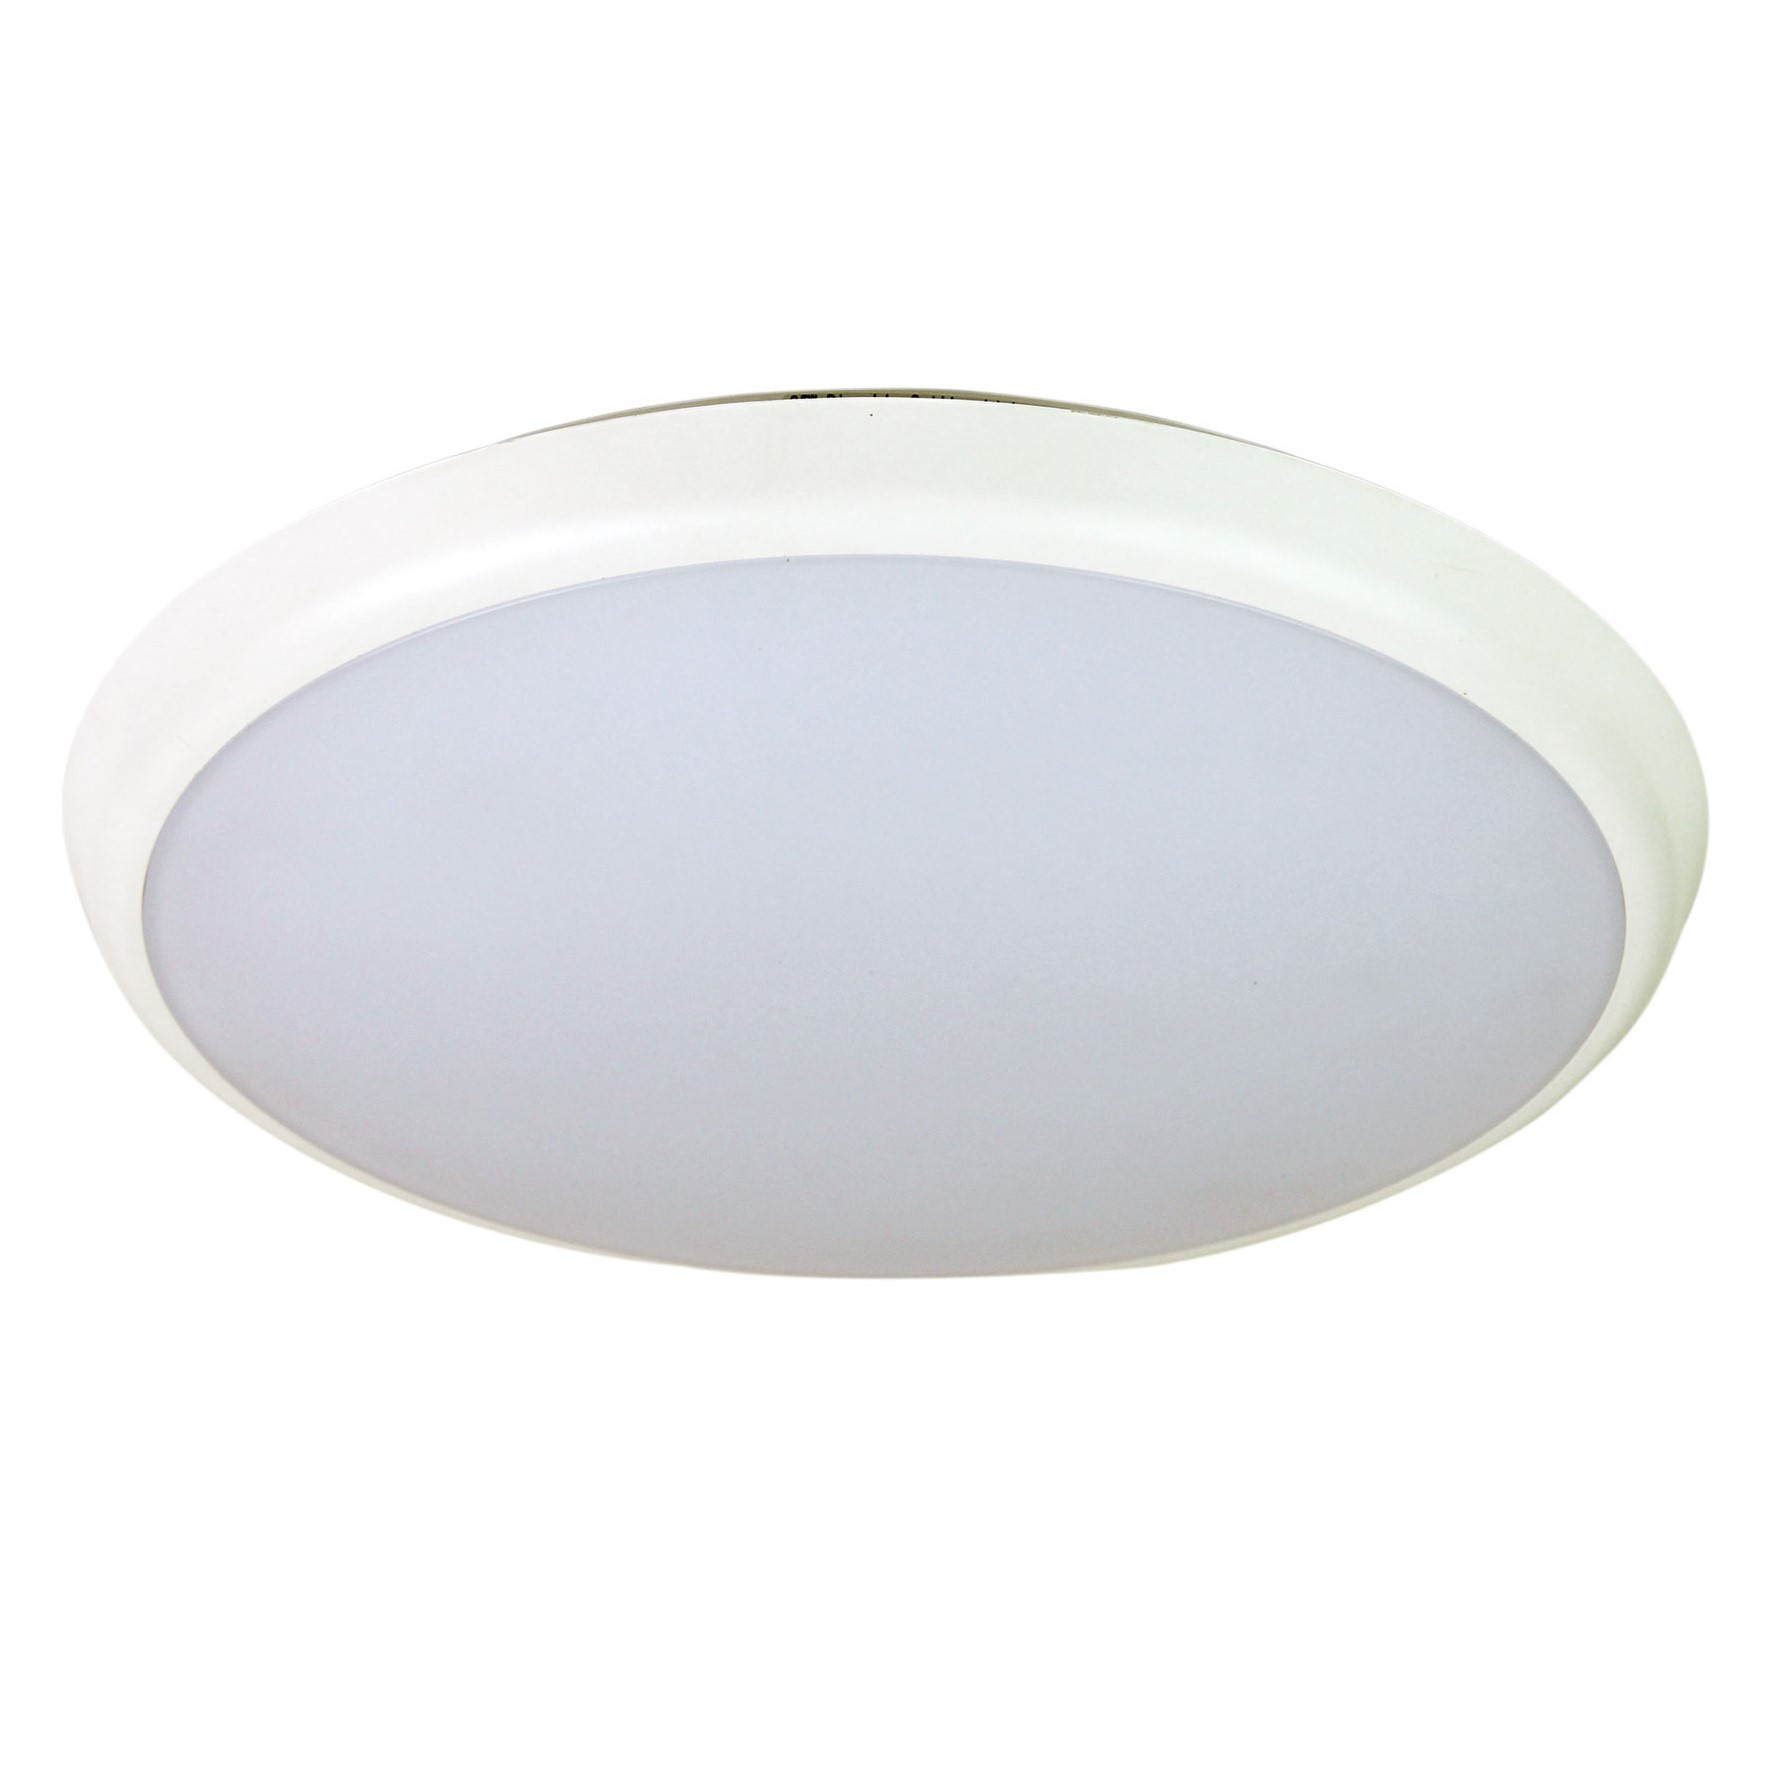 Kore IP54 Indoor / Outdoor Colour Changing LED Oyster Light, 30cm, White